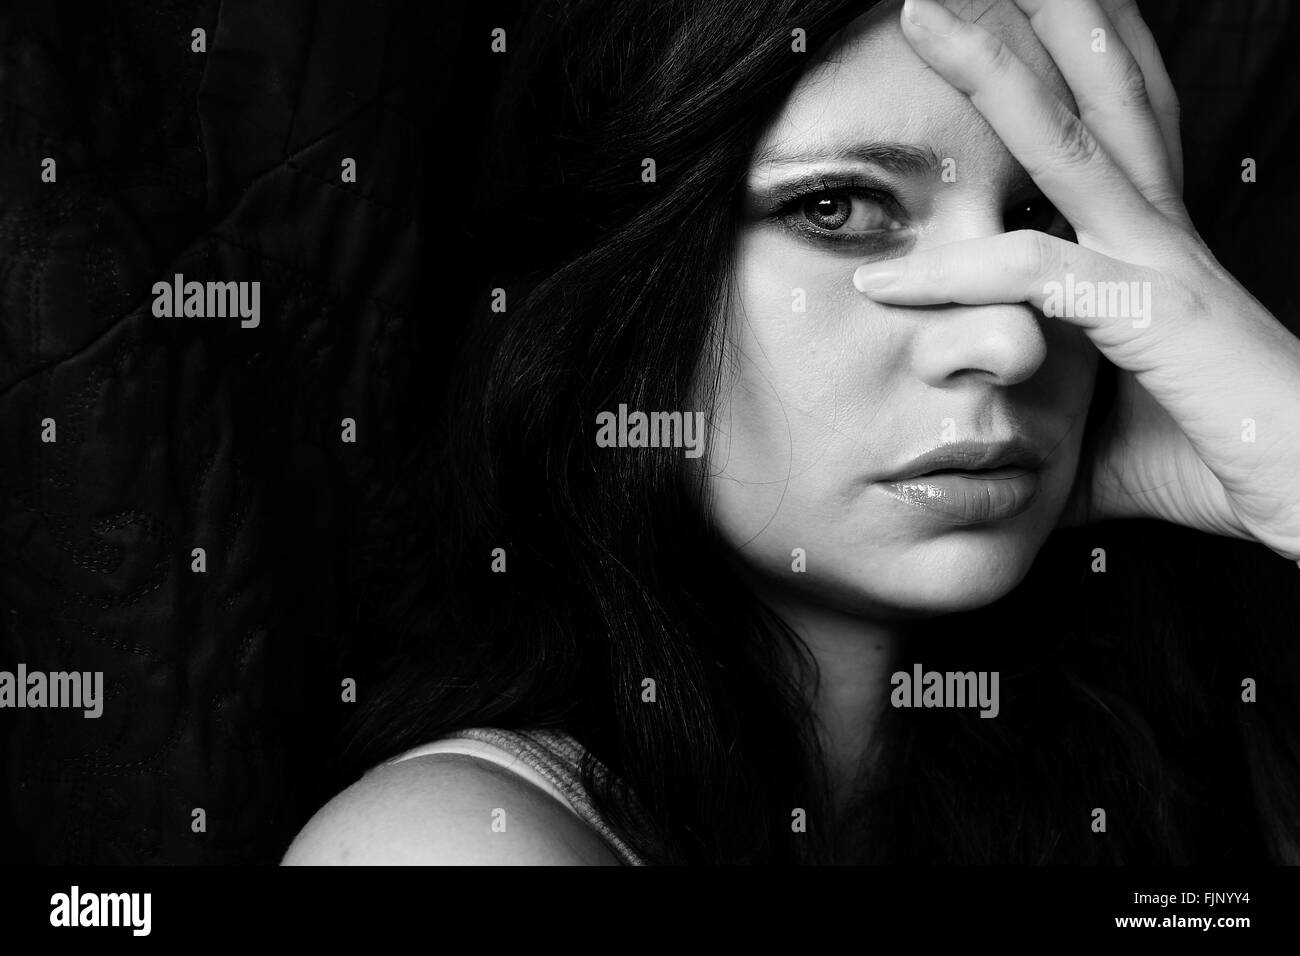 Close-Up Portrait Of Thoughtful Young Woman With Hand On Face Against Black Background Stock Photo